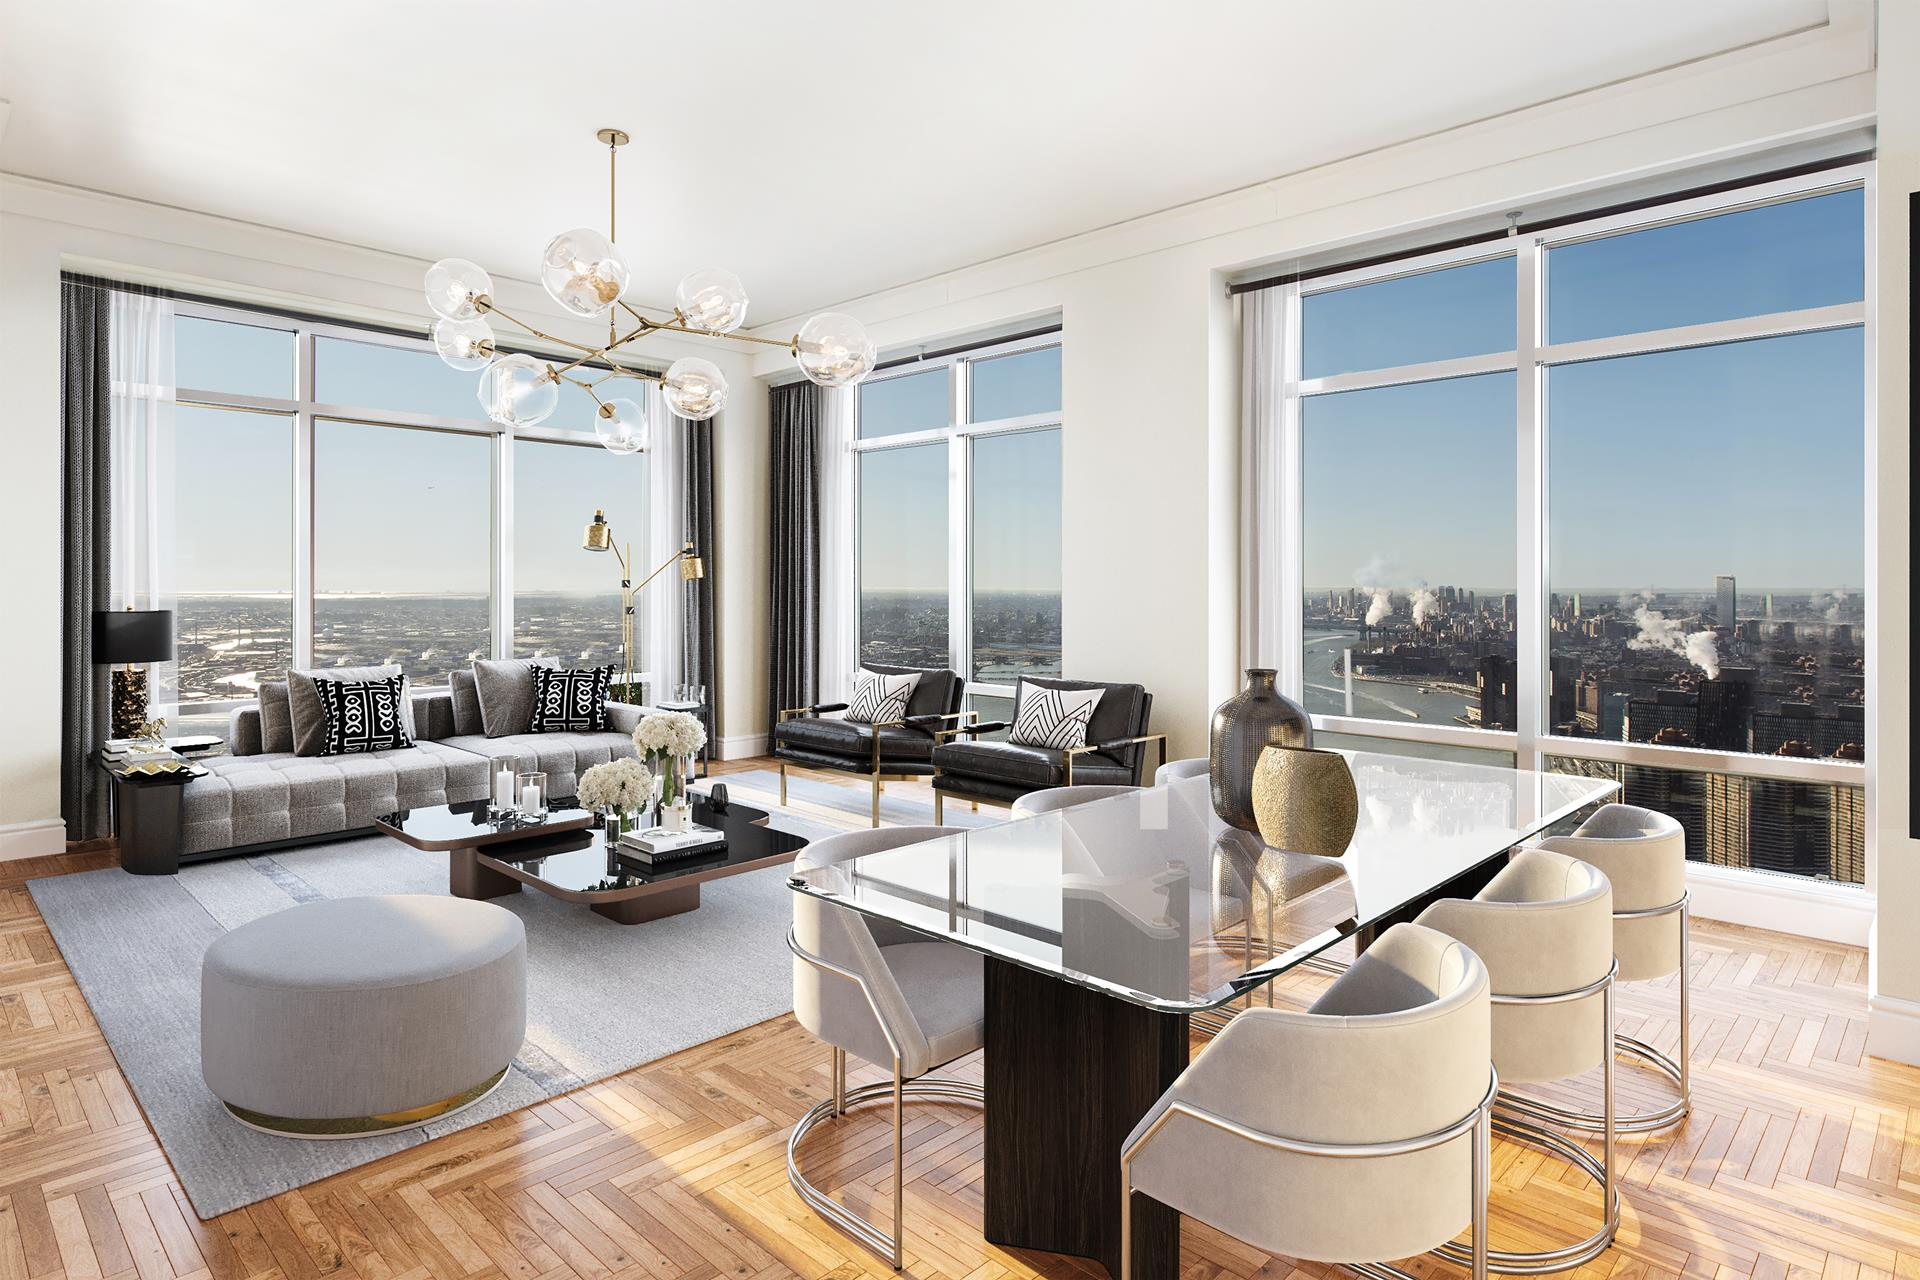 Exceptional 82nd Floor 4 bedroom, 3.5 bathroom corner residence in the Sky. This beautifully renovated SOUTH & EAST facing home encompasses almost 2900 square feet, with soaring 12-foot ceilings and Floor-to-Ceiling Windows throughout. Sunlight floods   every room and the endless views are simply breathtaking. Perched high above the city, you will enjoy iconic helicopter views of New York City's world famous landmarks, including the Empire State Building, Chrysler Building, United Nations, 1 World Trade,   gorgeous bridges, and the East River and beyond.     The superbly renovated eat-in kitchen at the center of the home is replete with Miele and Sub-Zero stainless steel appliances, a banquette and a Sub-Zero wine cooler. Adjacent is a grand study or fourth bedroom with hand-crafted custom cabinetry and delightful   river views. The master bedroom is lined with custom lacquer cabinetry and enjoys walk-in closets, automated blinds and a well appointed five-fixture marble bath. The two additional bedrooms also have en-suite marble baths and magnificent views. Other features   include Multi-zone Central Air and Heat, automated blinds throughout, washer/dryer and a marble guest powder room.    The building offers the highest quality of white glove services and amenities, including: a world class Health Club & Spa, Massage & treatment rooms, Sauna & Steam Rooms, 60 foot Salt-water Swimming Pool, Yoga & Pilates classes, brand new child's playroom,   Wine Cellar, landscaped Garden & courtyard, Porte cochere driveway with valet service and garage. The building also houses the delectable UN Plaza Grill restaurant and the elegant World Bar. AMAZING OPPORTUNITY Additionally, this apartment presents an amazing   opportunity to either be purchased alone OR be purchased in Addition to 82ACD...creating a unique and extremely rare opportunity to own the ENTIRE FULL FLOOR.... Your Own Private 11,000+/- Square Foot Sky-Mansion.    Don't miss your opportunity to call this exceptional 